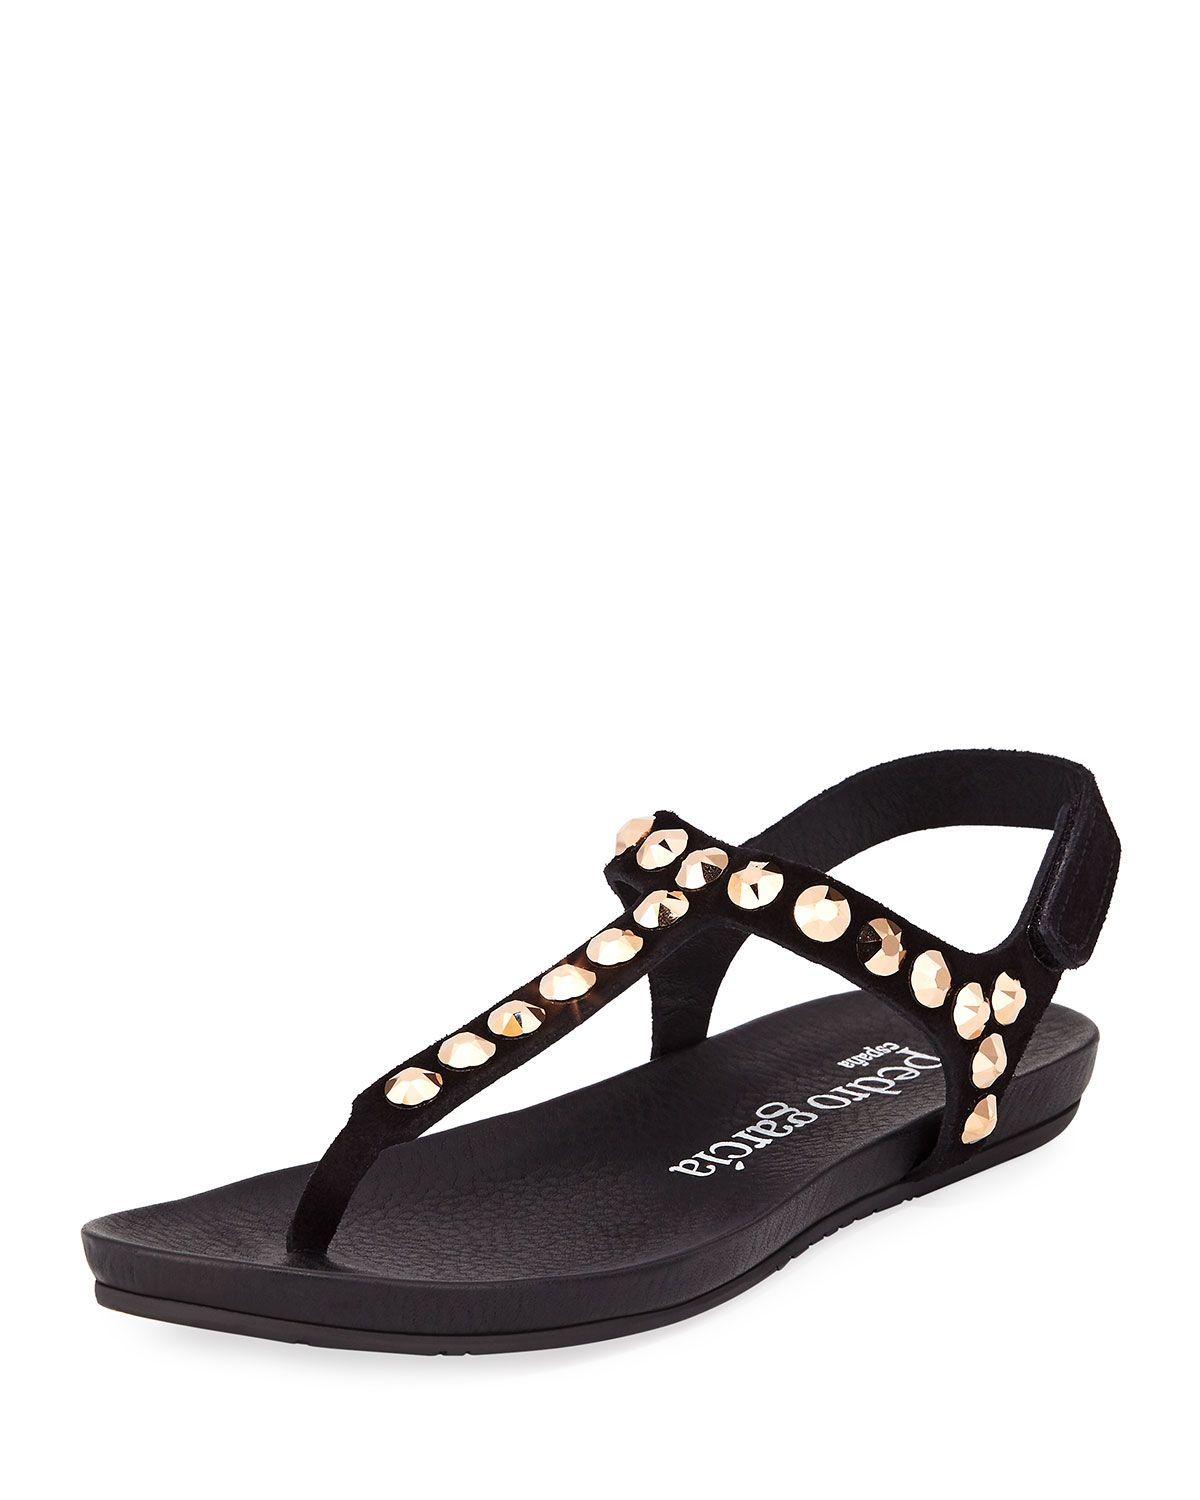 Pedro Garcia Judith T-Strap Sandals shop cheap online cheap for sale clearance amazing price cheap many kinds of P5qhB2Vs